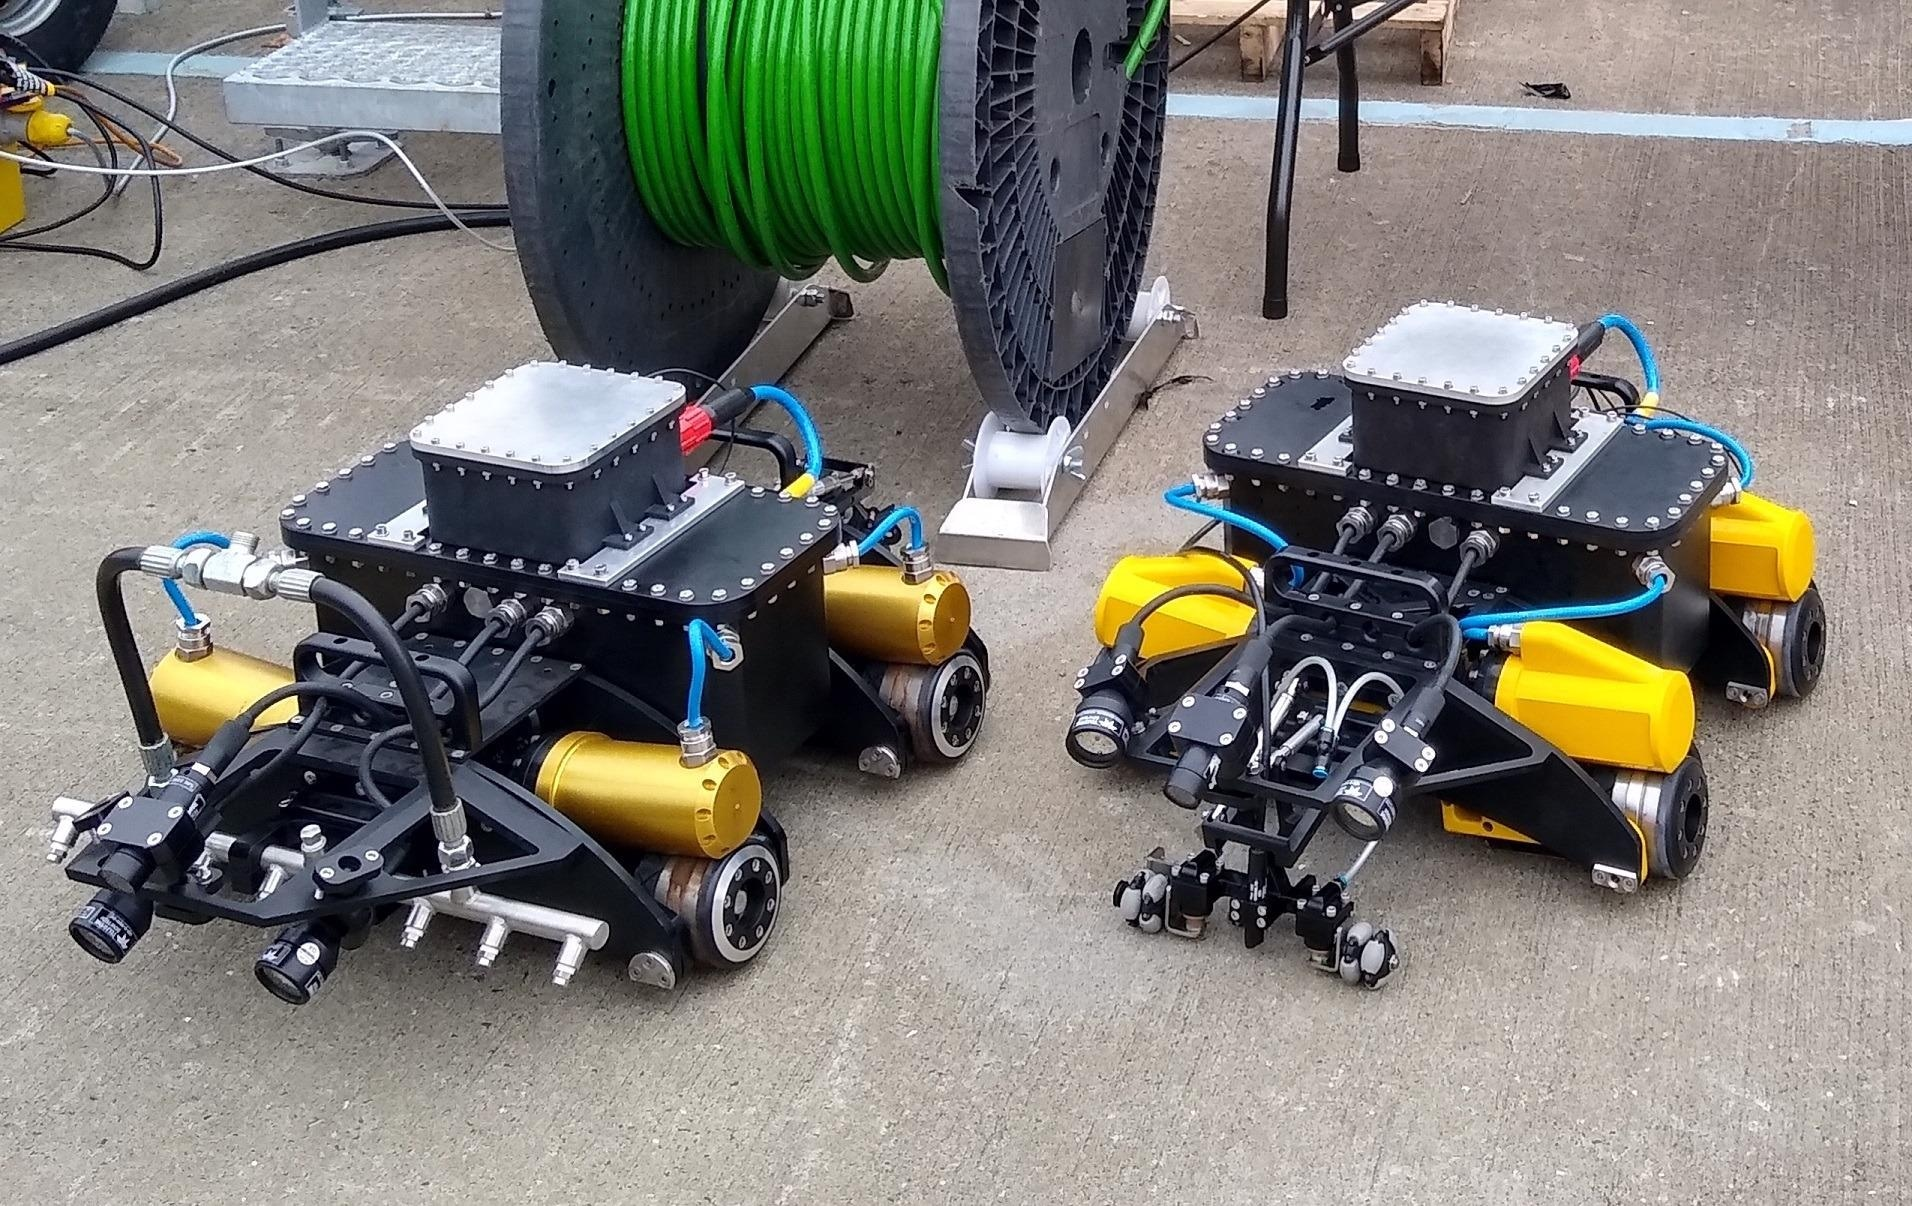 Amphibious iFROG Robot Leaps Ahead in Ability to Inspect and Maintain Offshore Assets